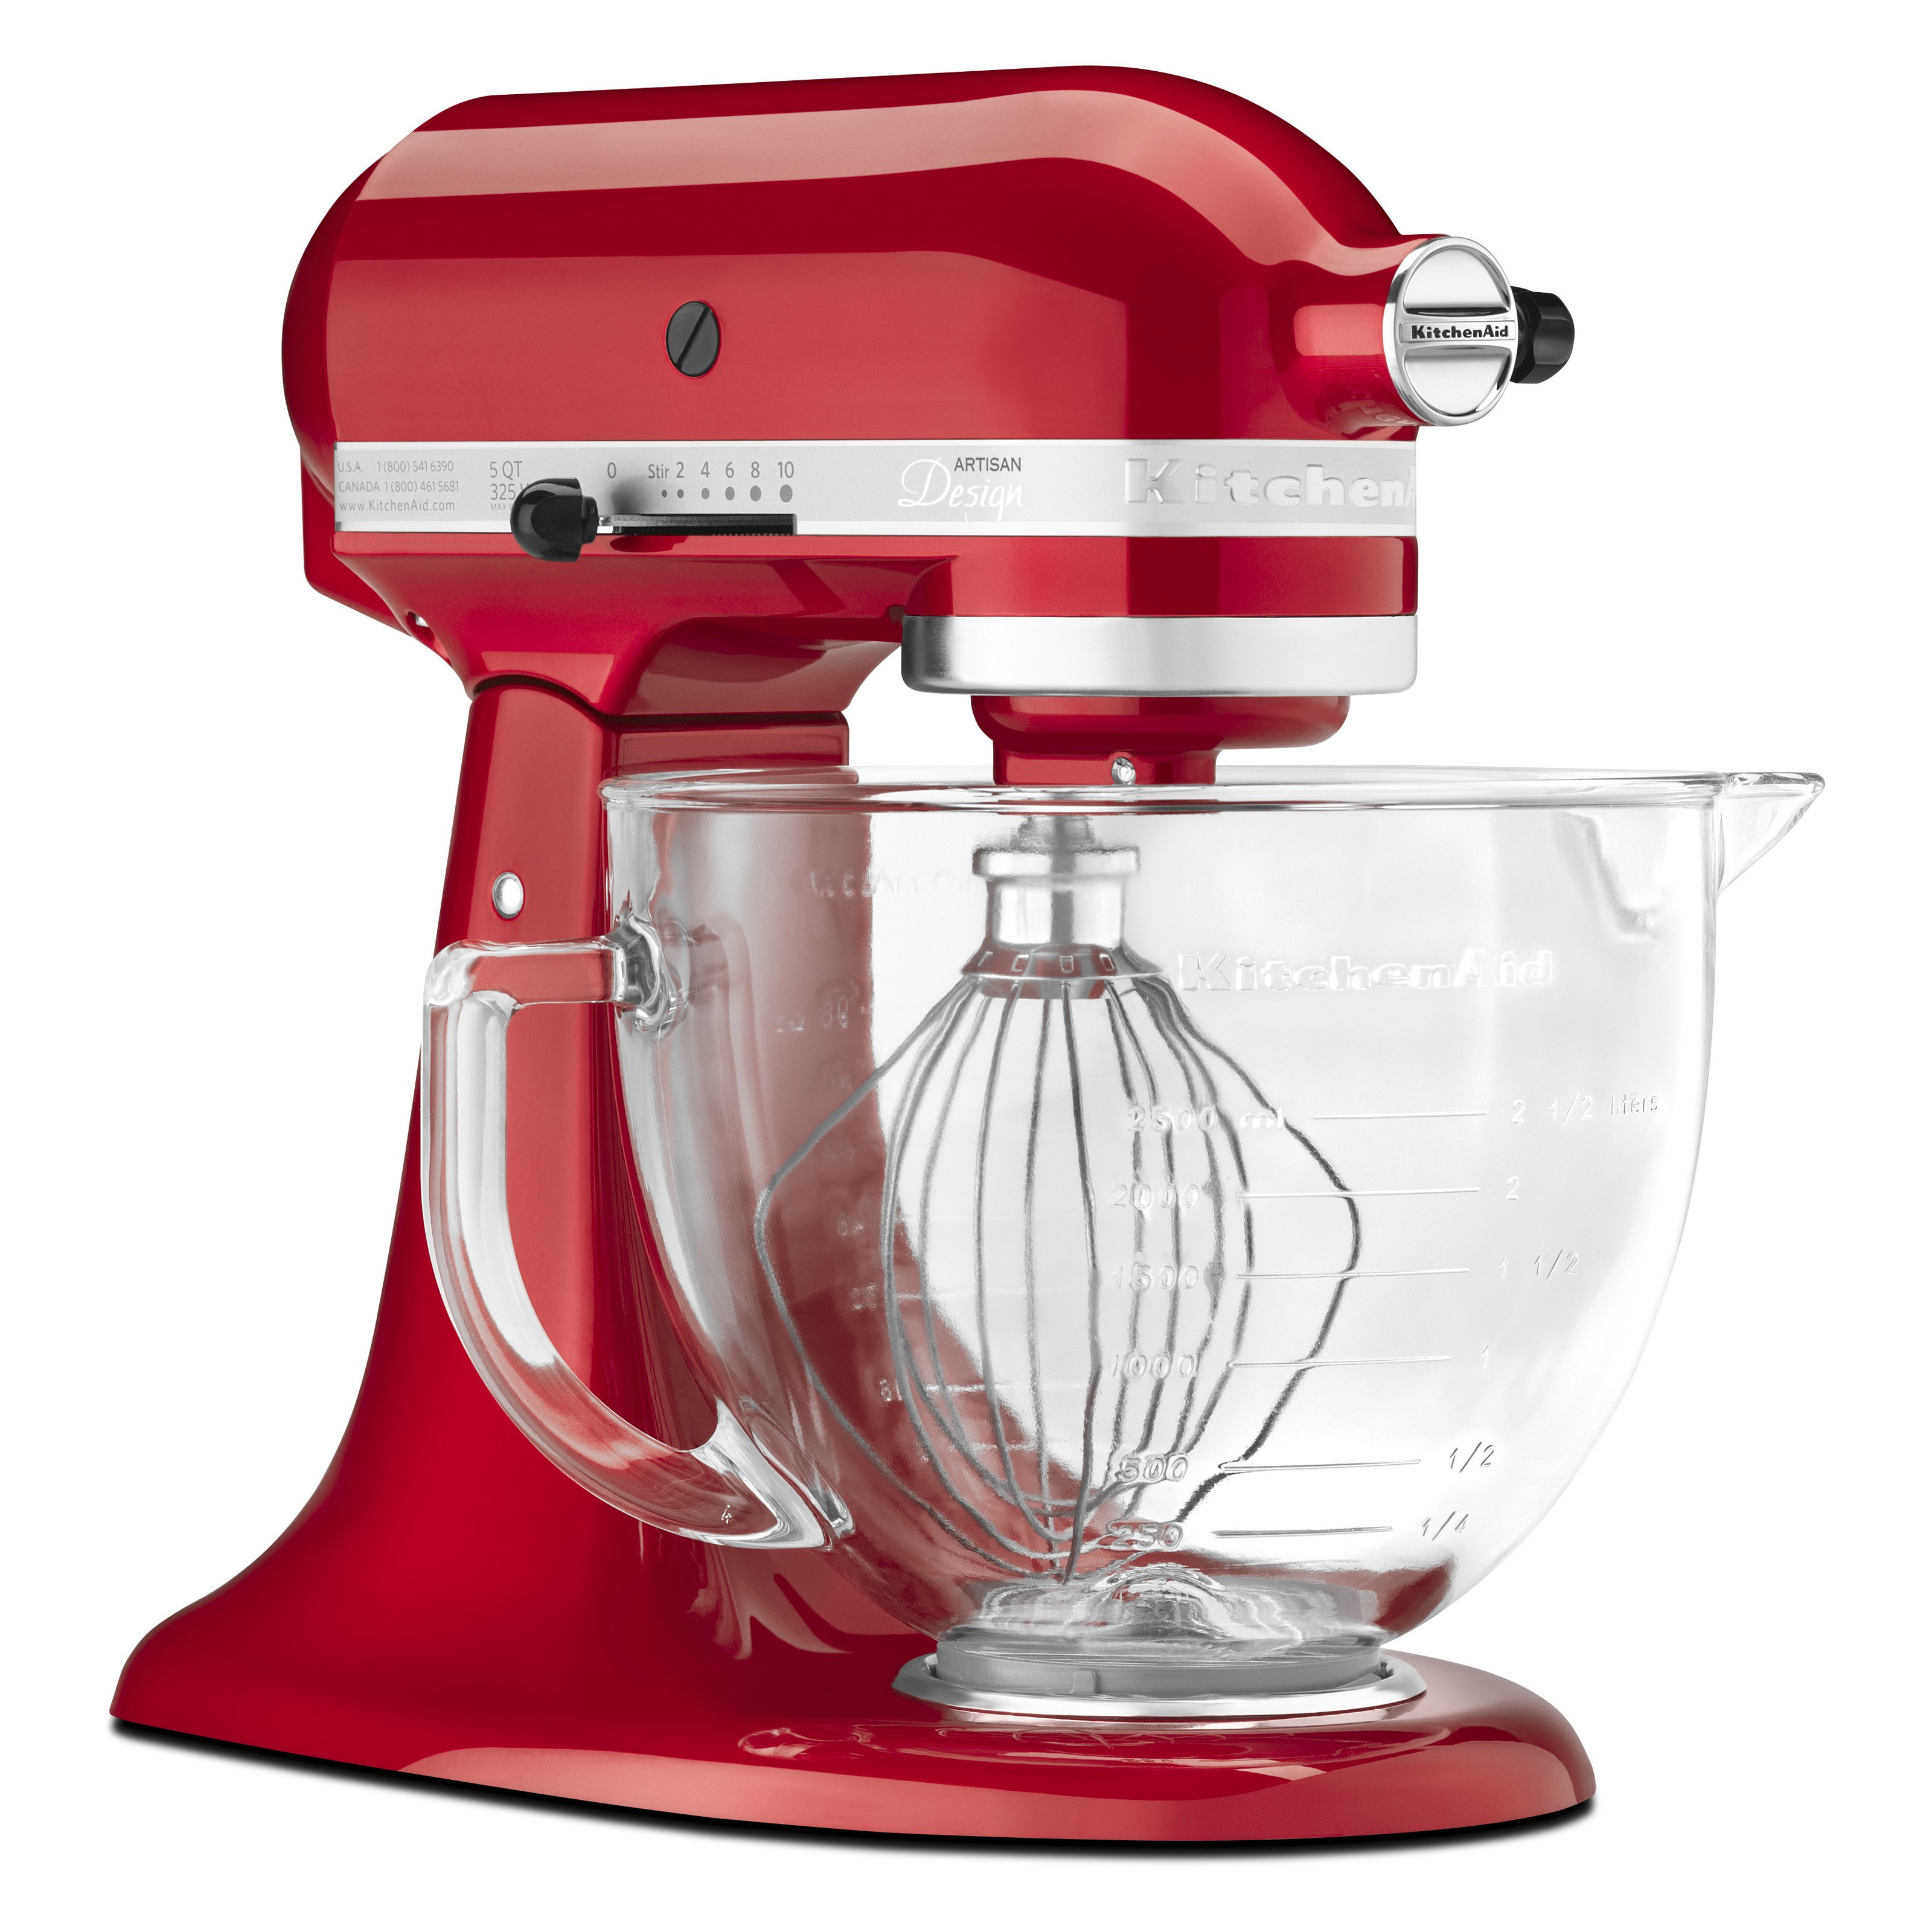 Kitchen aid heavy duty - Kitchenaid Ksm155gbca Artisan Design Series Stand Mixer With Glass Bowl Candy Apple Red Walmart Com